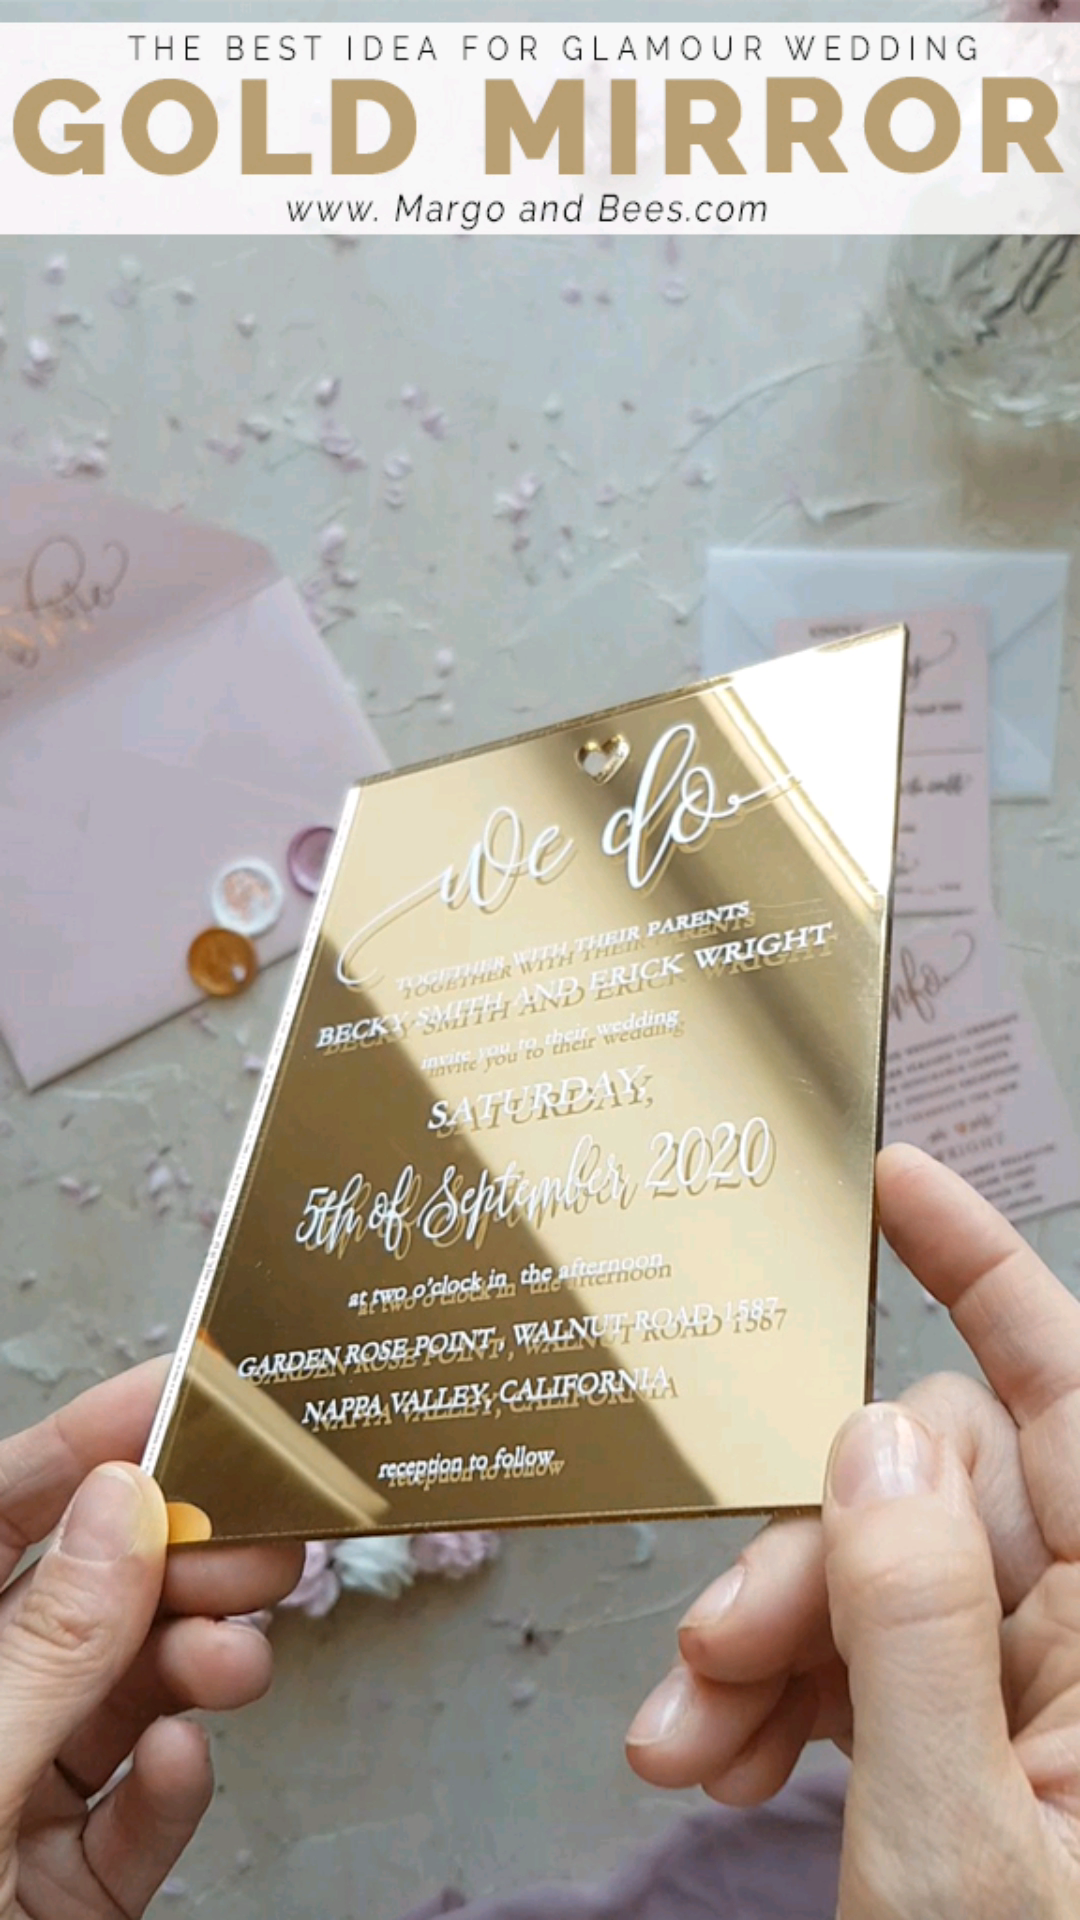 Glamour wedding invitation idea- #goldmirror   #margoandbees #weddinginvitations #glamourweddingideas #goldinvitations #modernwedding